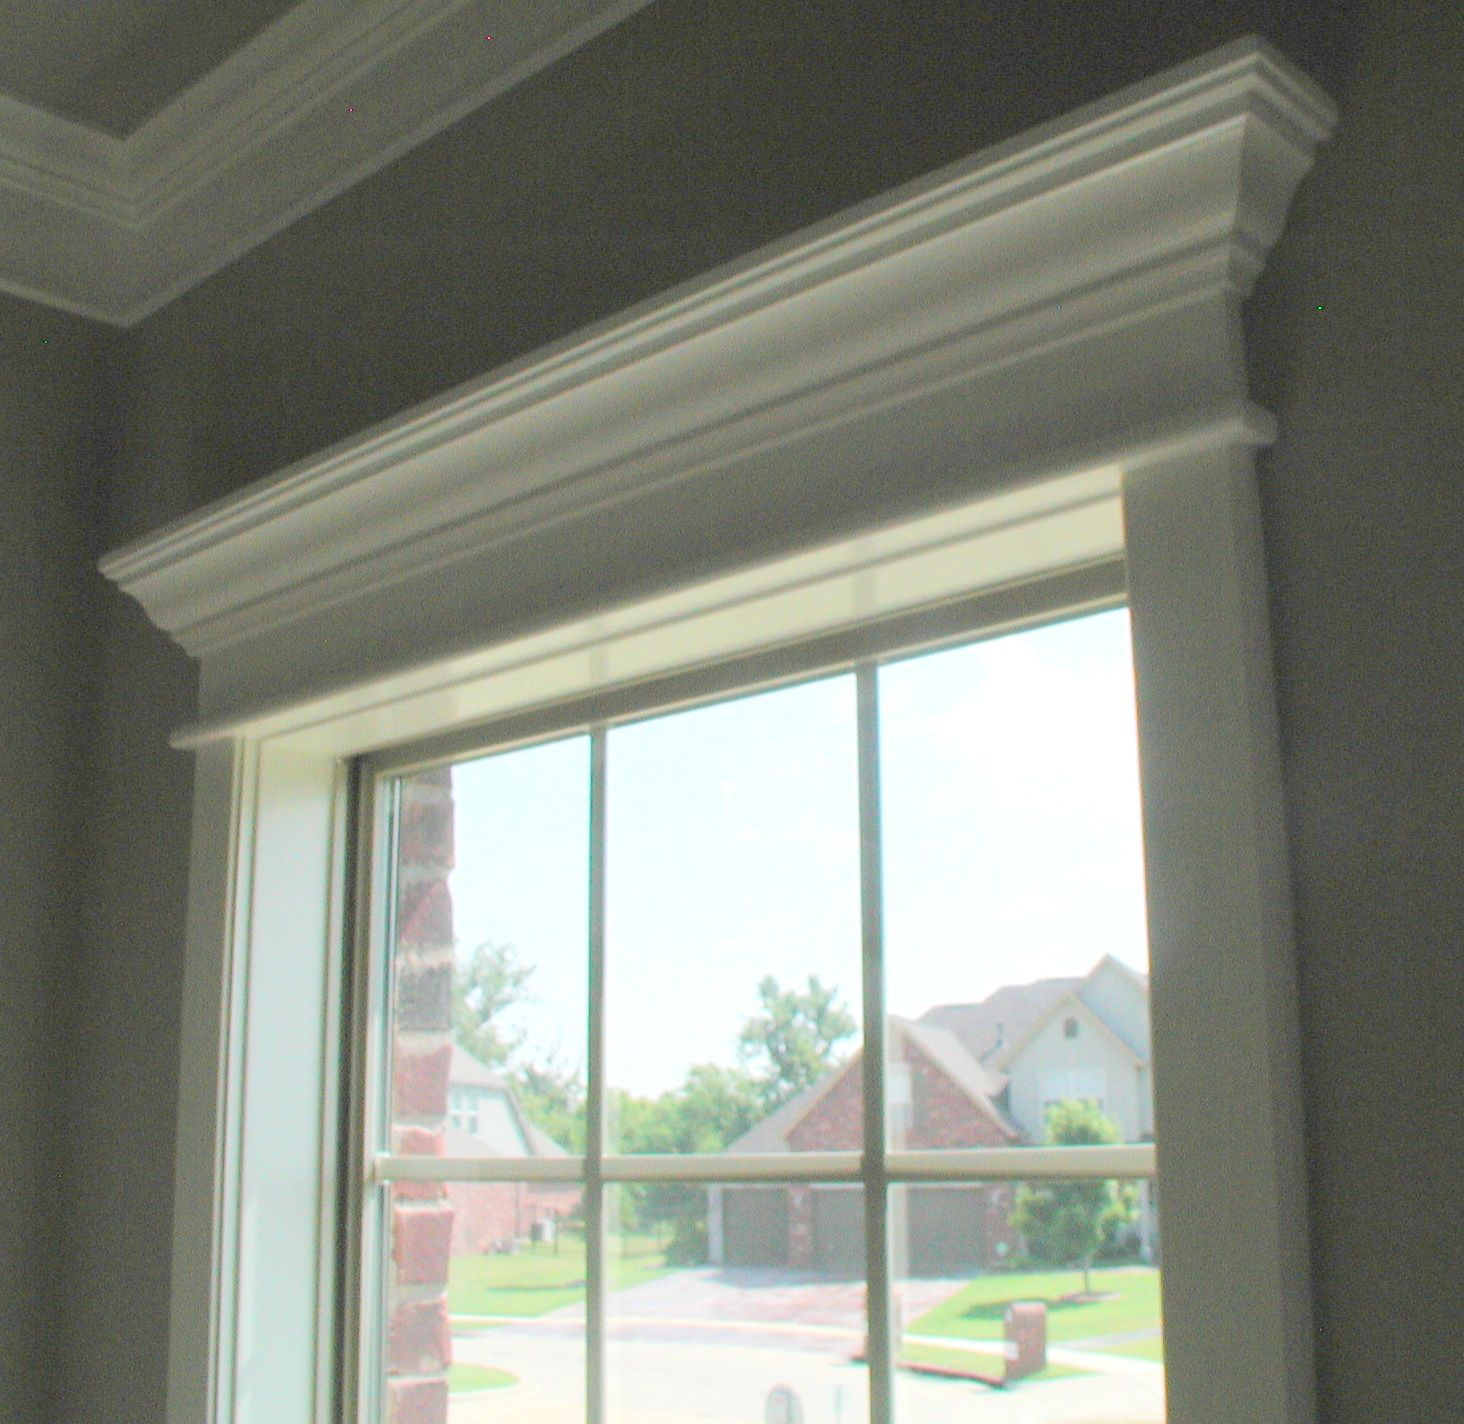 Doorway and Window molding | Window, Room and Moldings